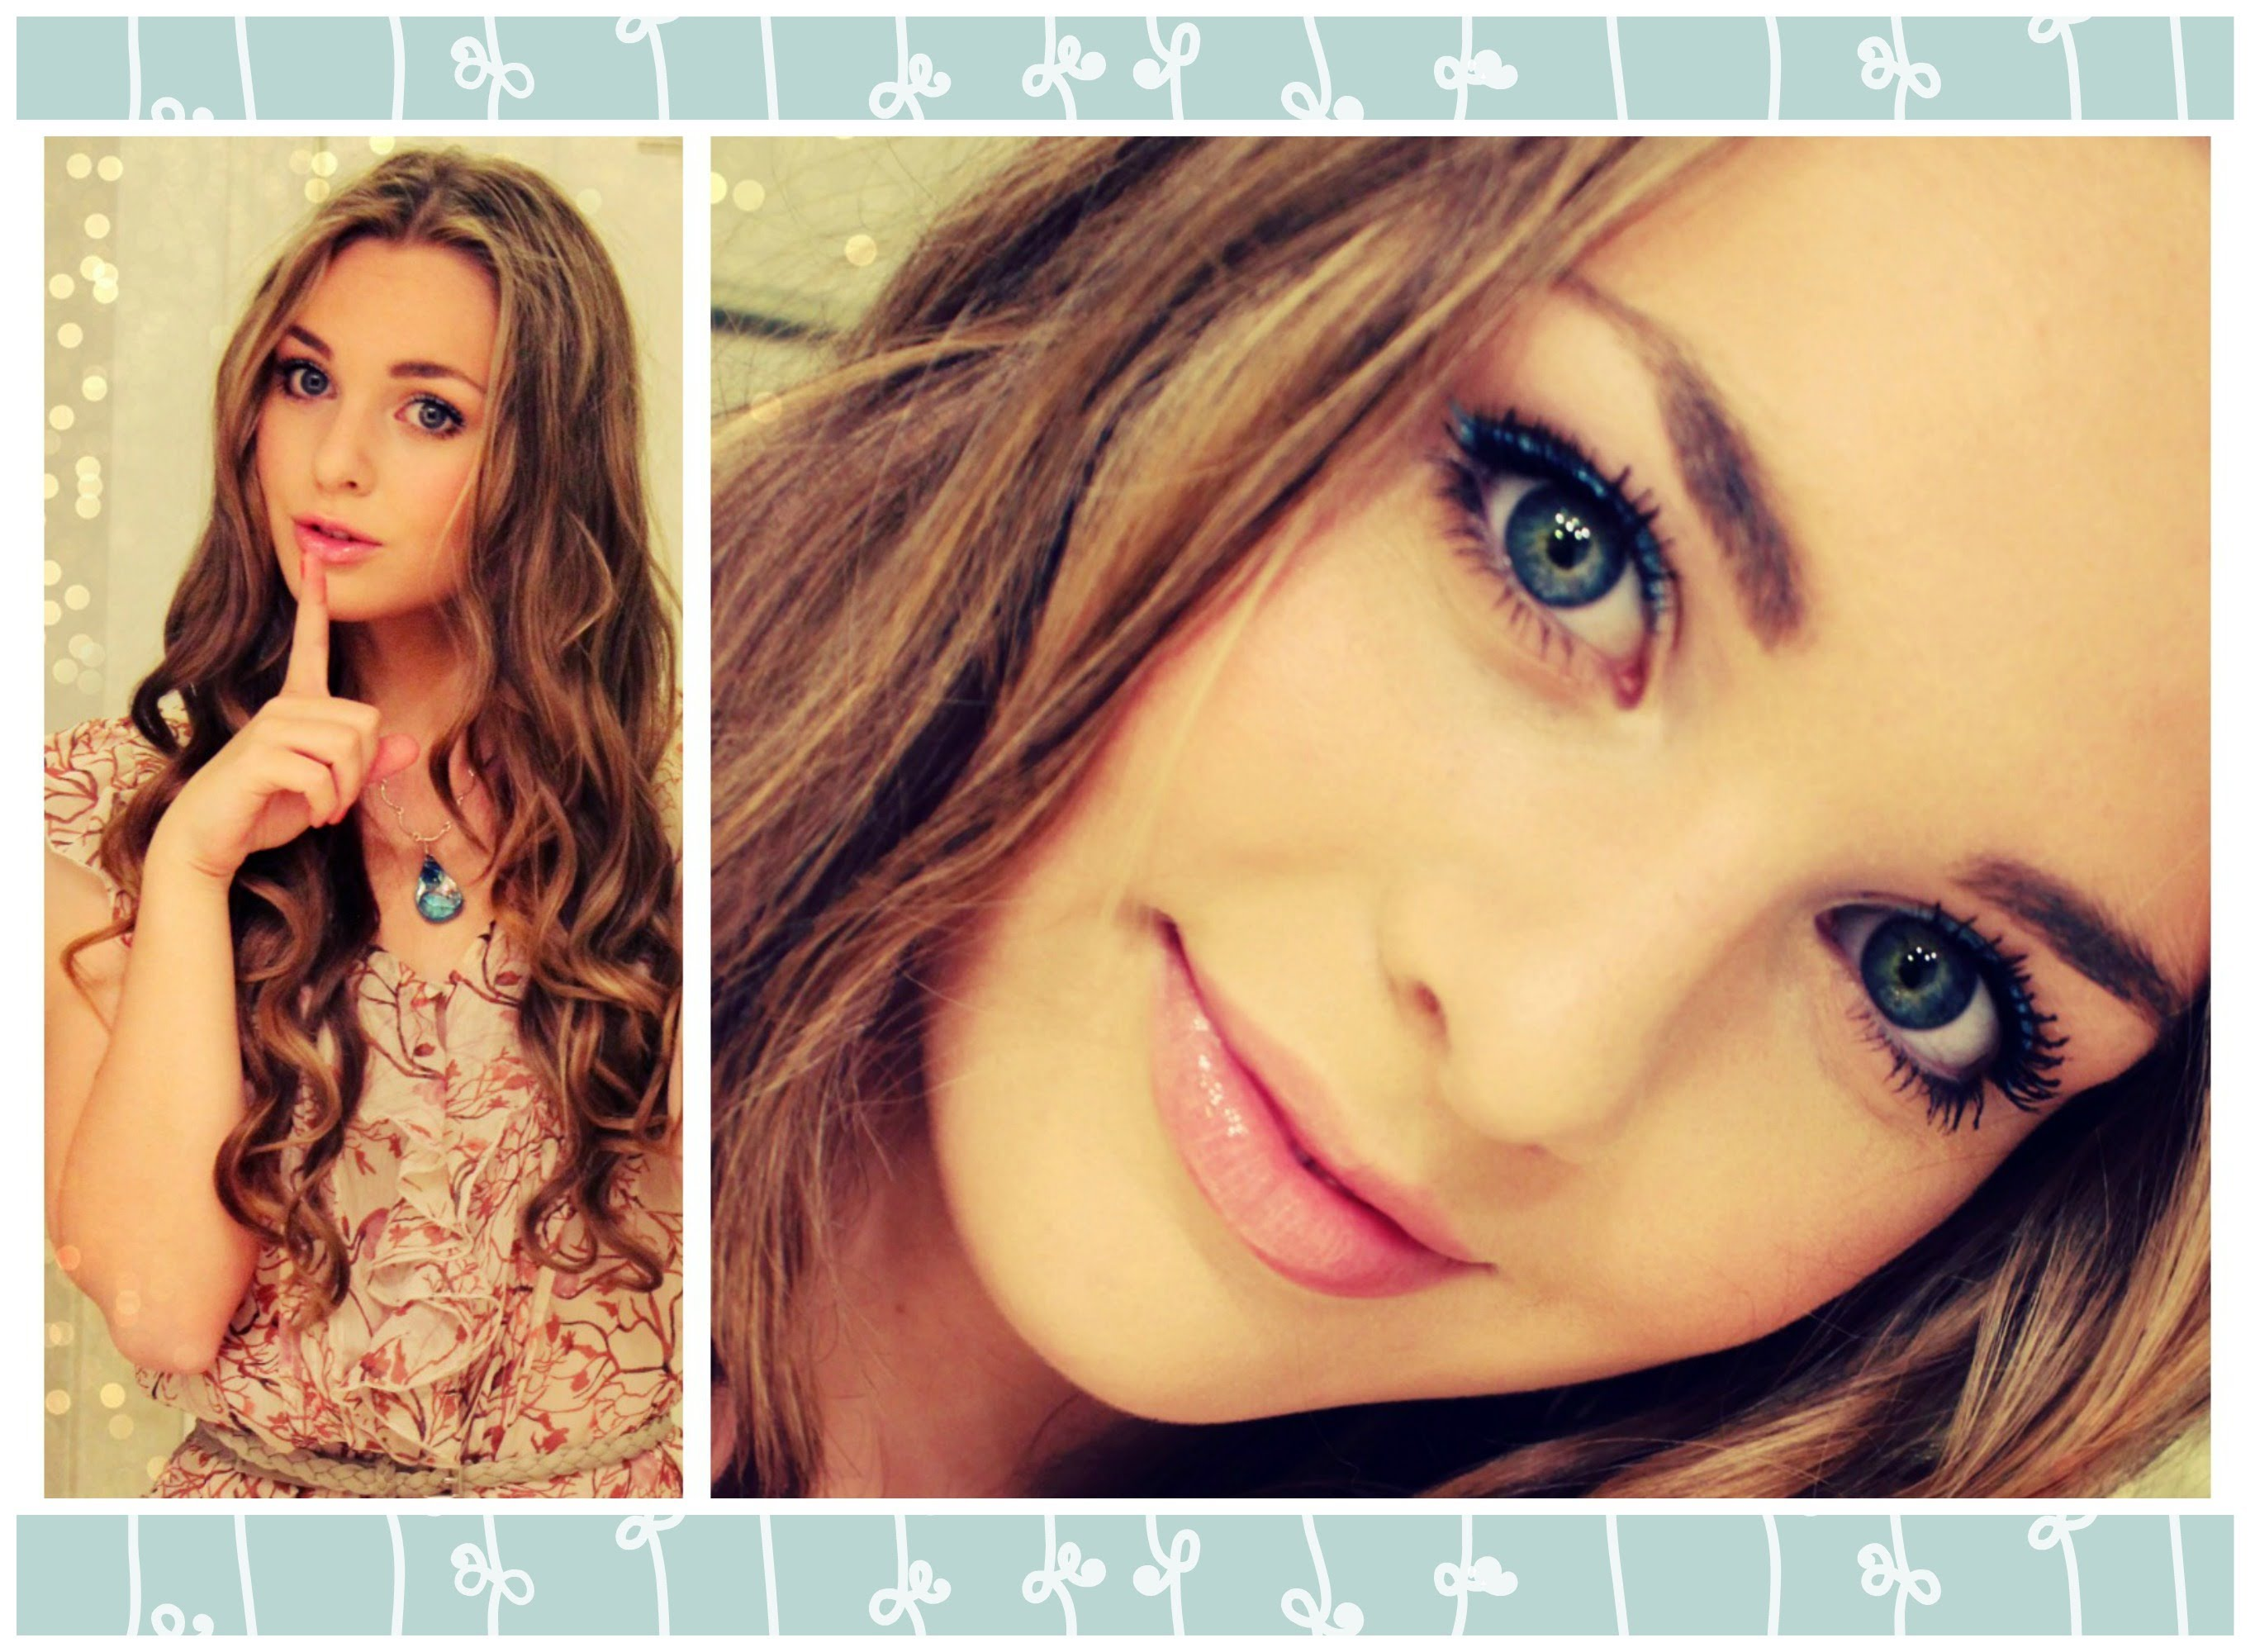 alison dilaurentis makeup, hair & outfit tutorial from pretty